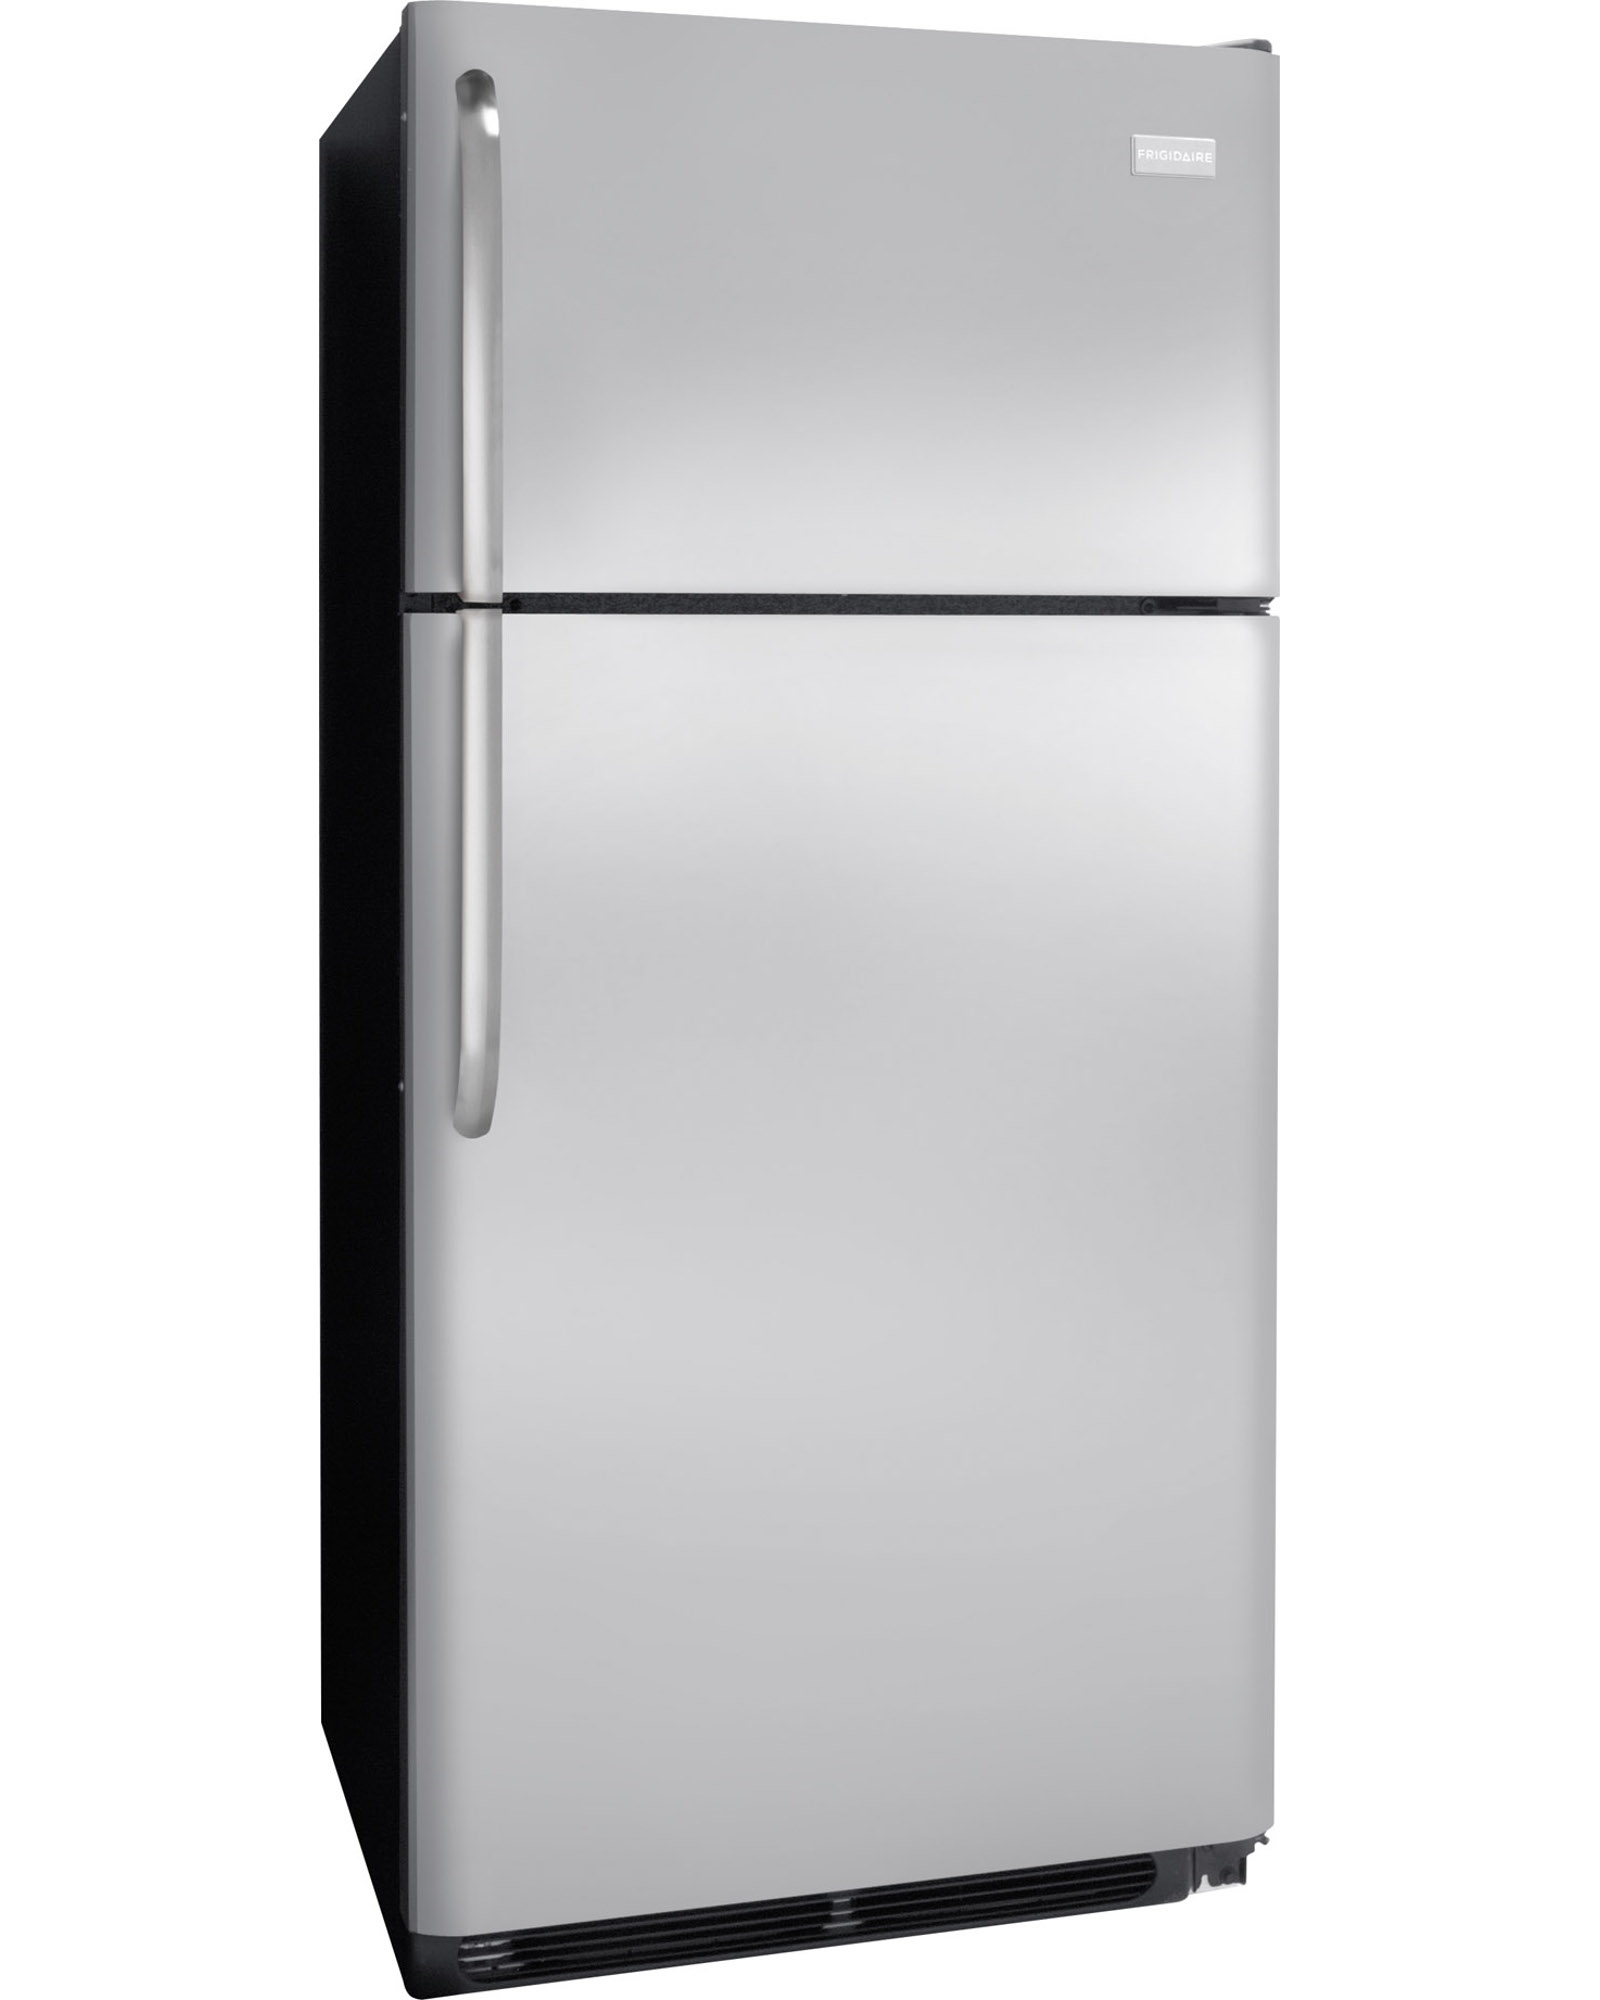 Frigidaire 18 cu. ft. Top Mount Refrigerator - Stainless Steel